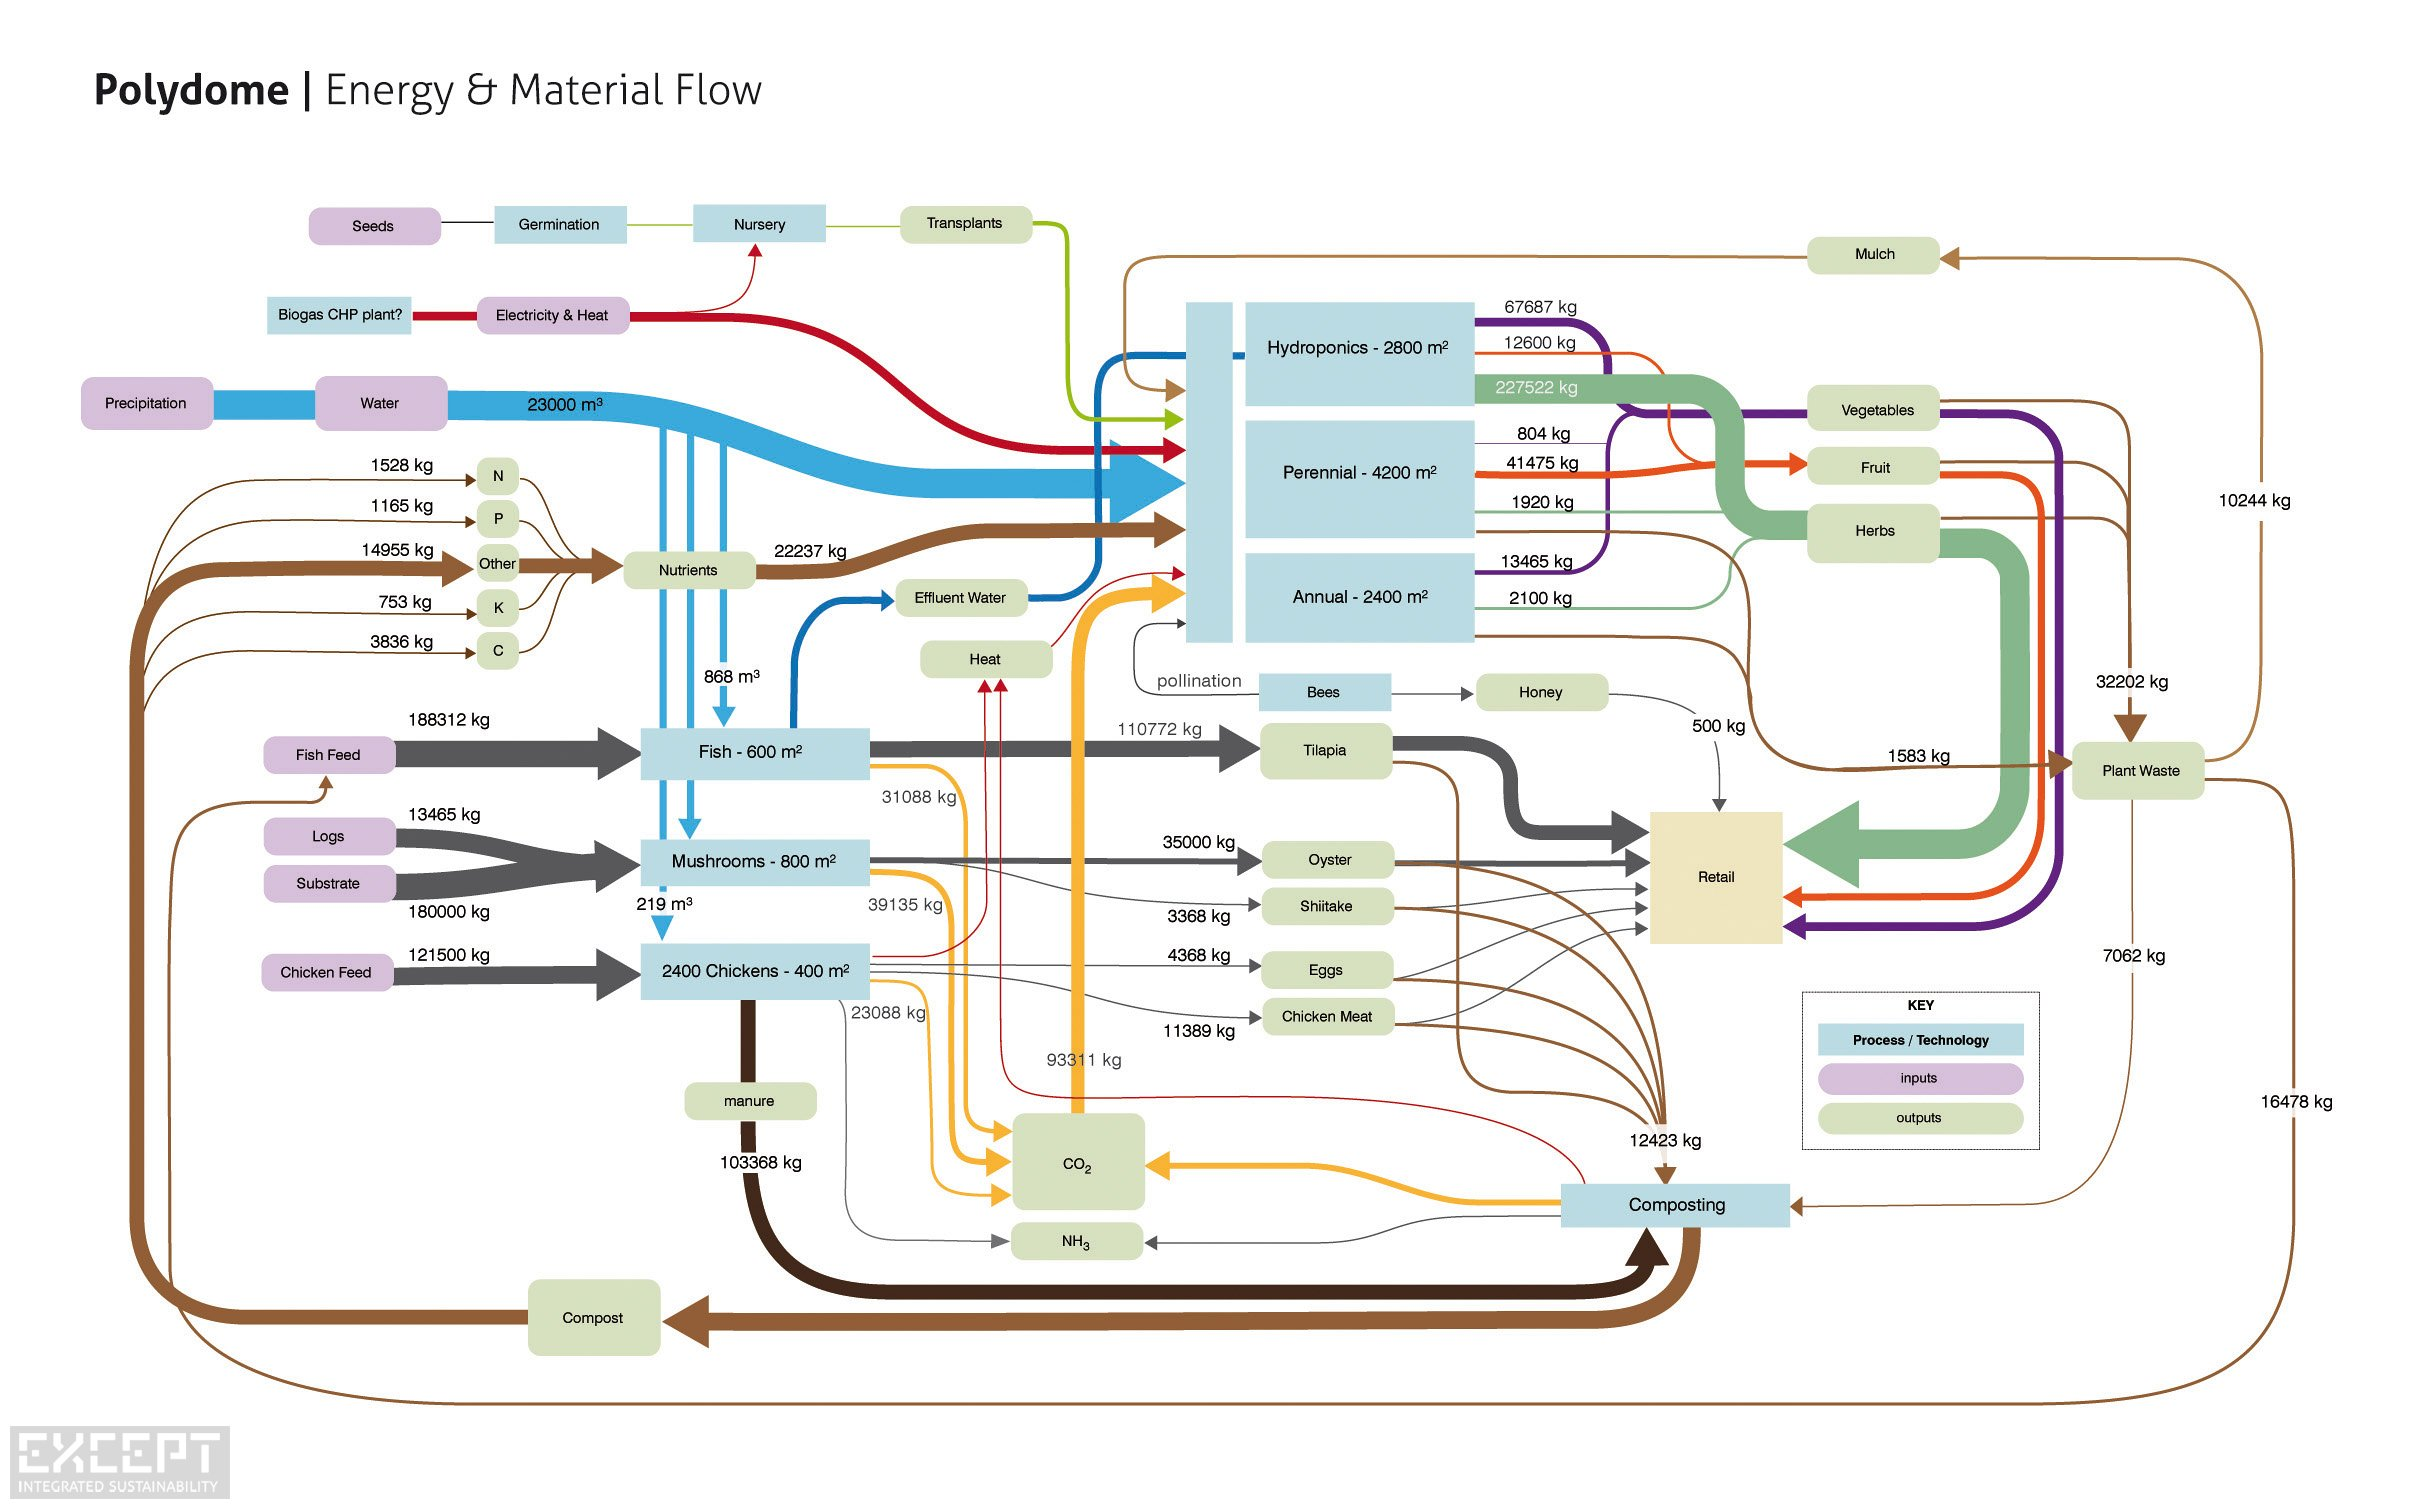 Except integrated sustainability systems mapping circularity system map energy material flow polydome system map showing the energy and material flow in an agricultural system ccuart Choice Image